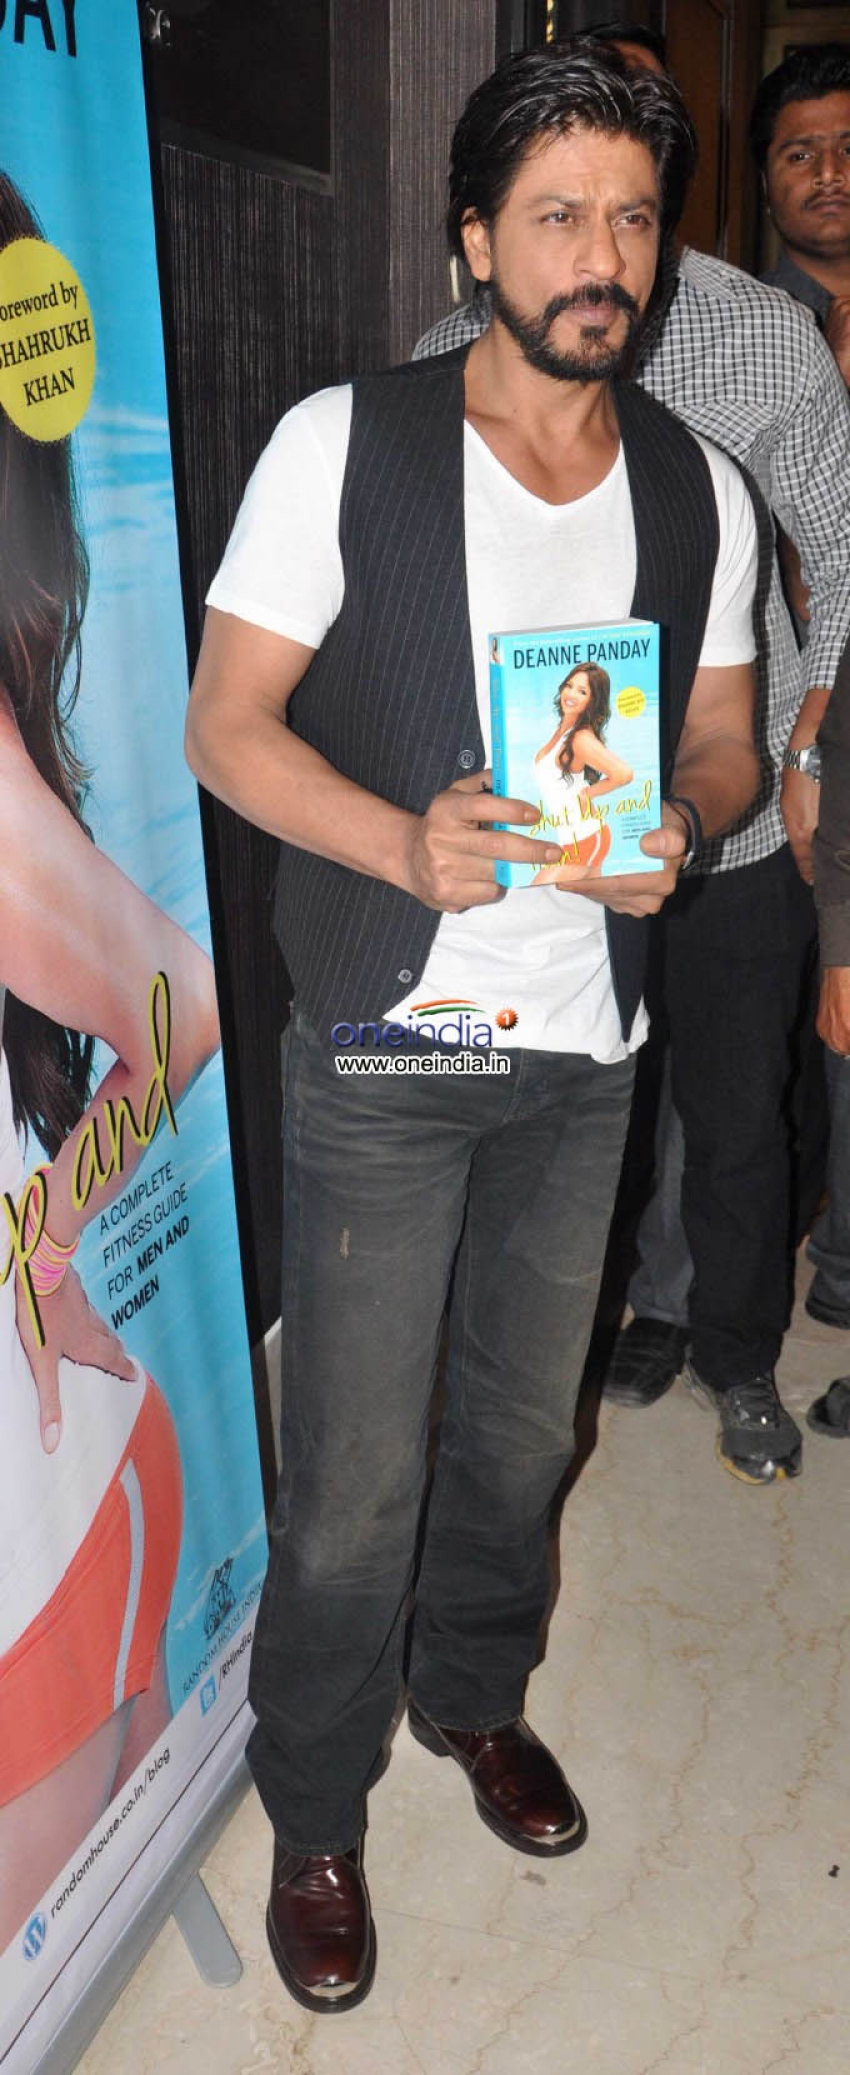 Shahrukh Khan launches Deanne Panday's book Shut Up and Train Photos